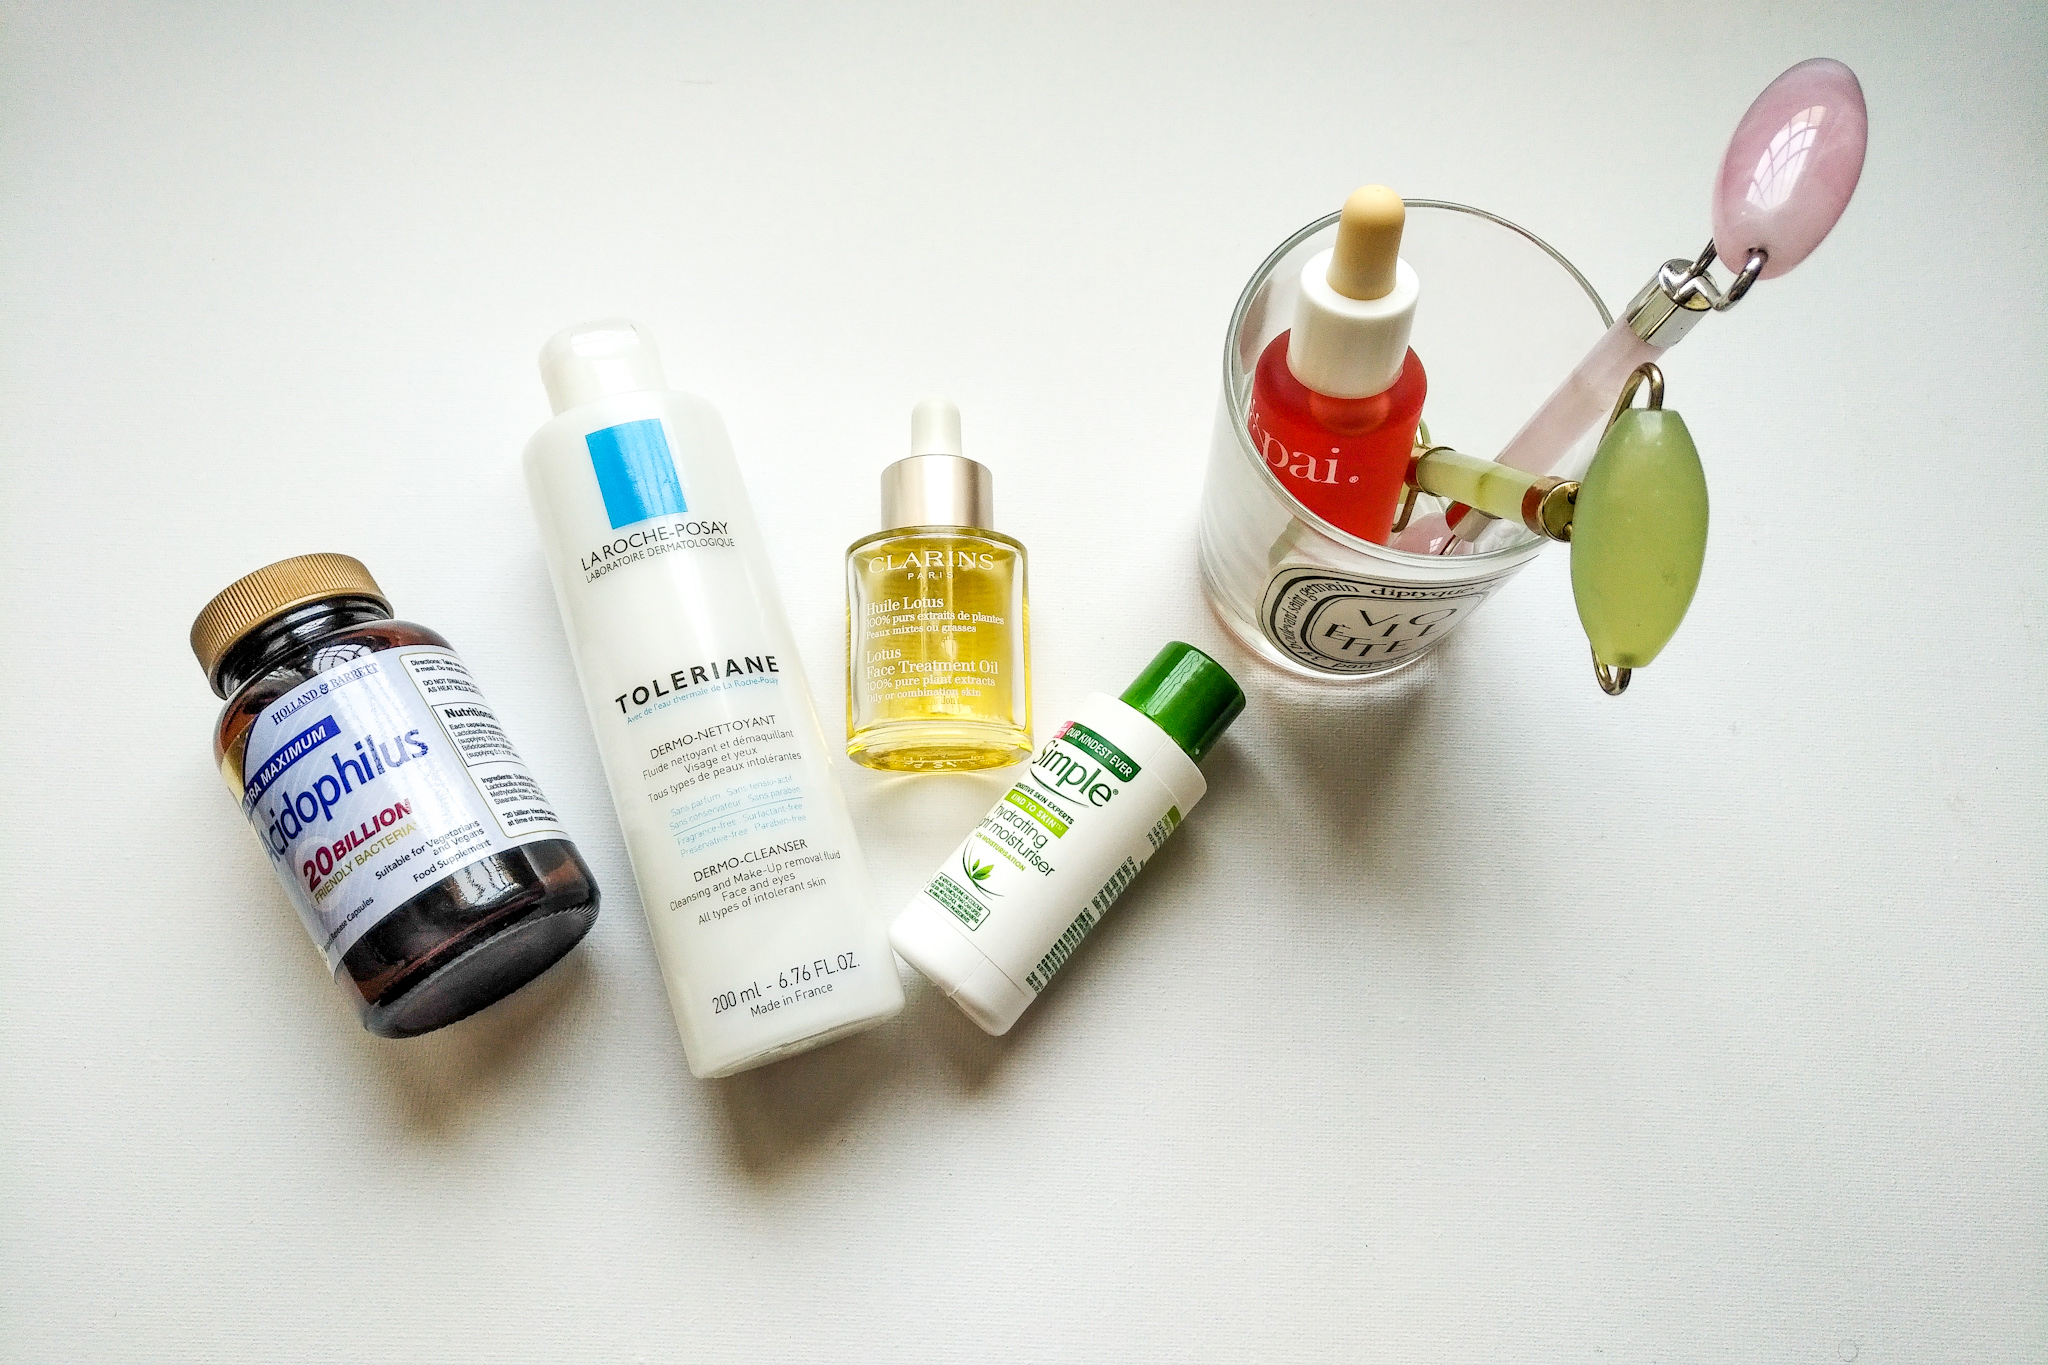 MY SKINCARE SAVIOURS FOR COMBINATION/OILY/SENSITIVE SKIN